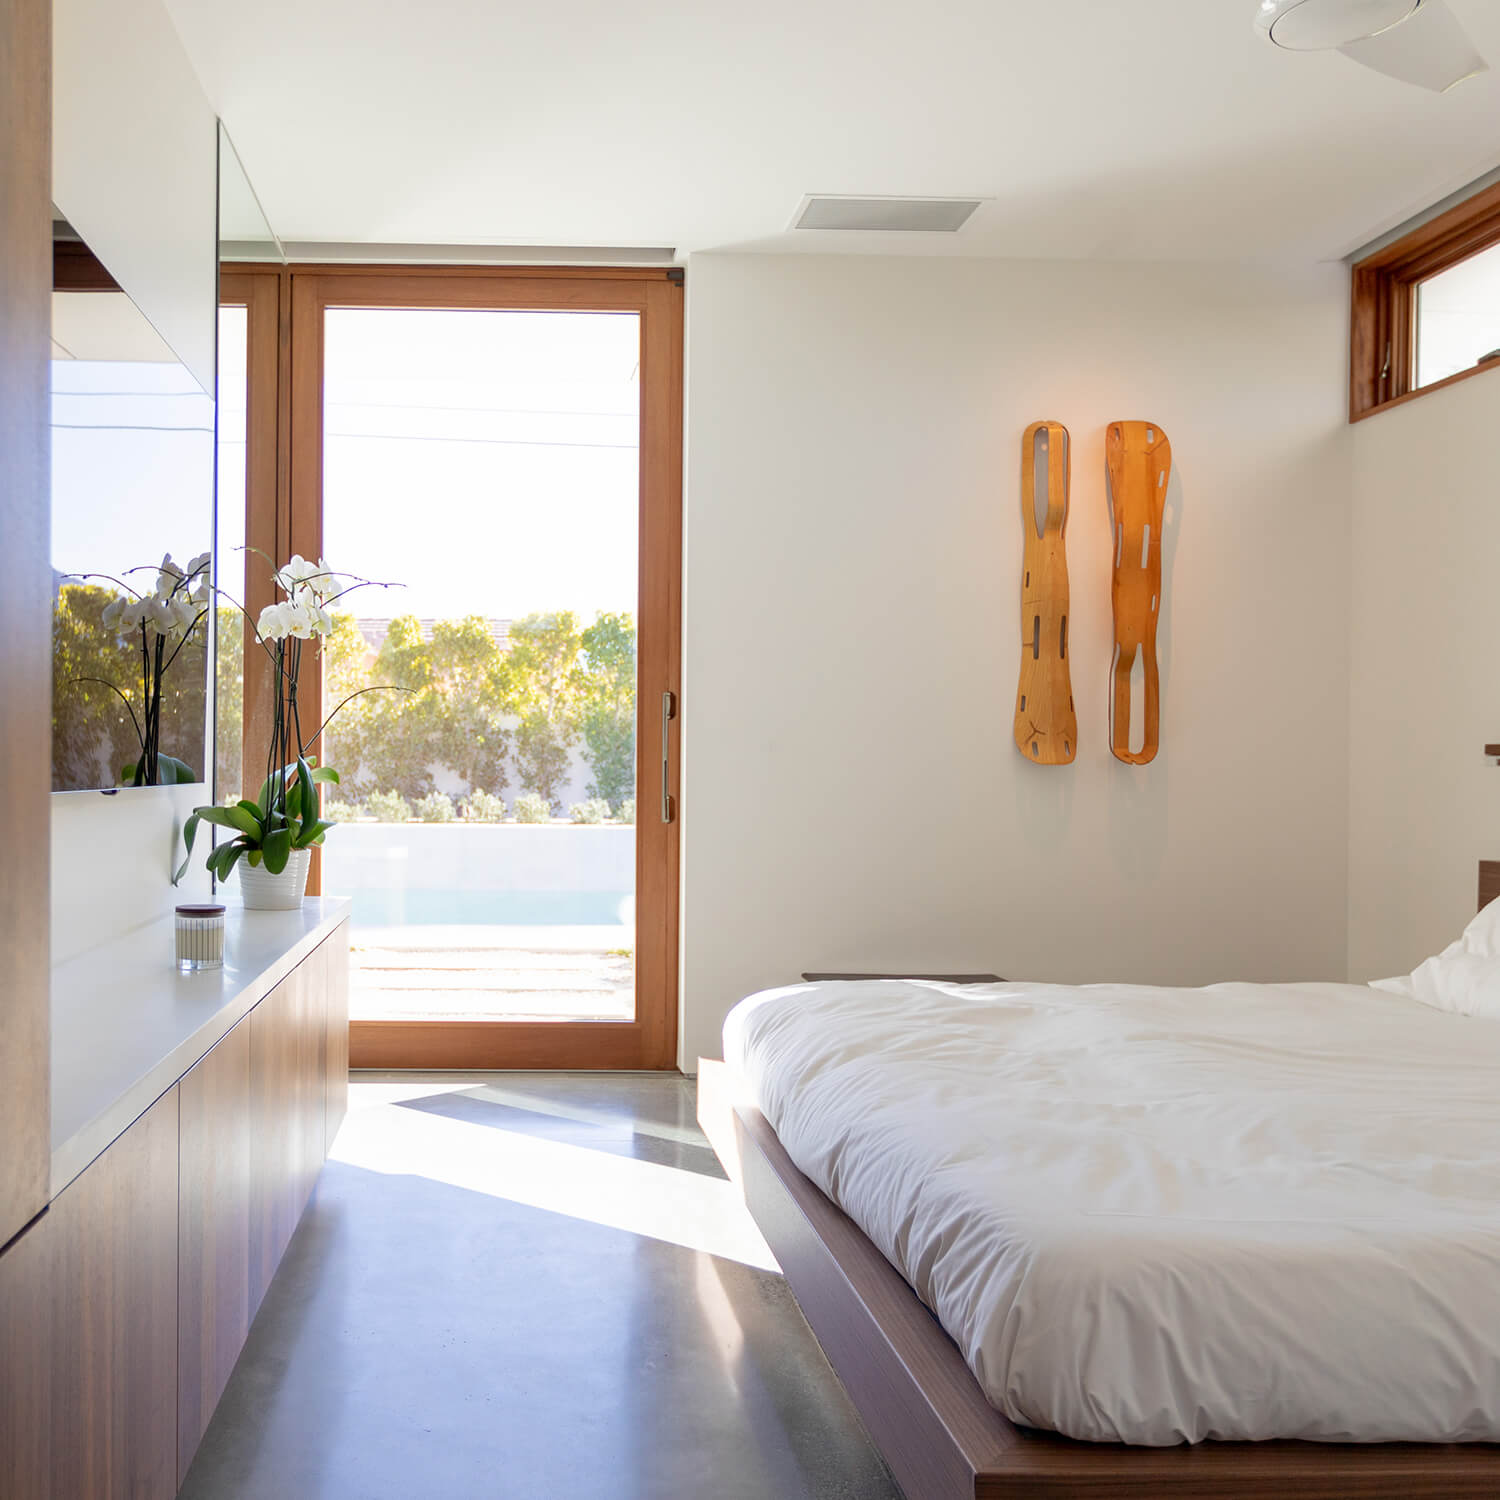 A bedroom in the Axiom Desert House in Palm Springs, California.